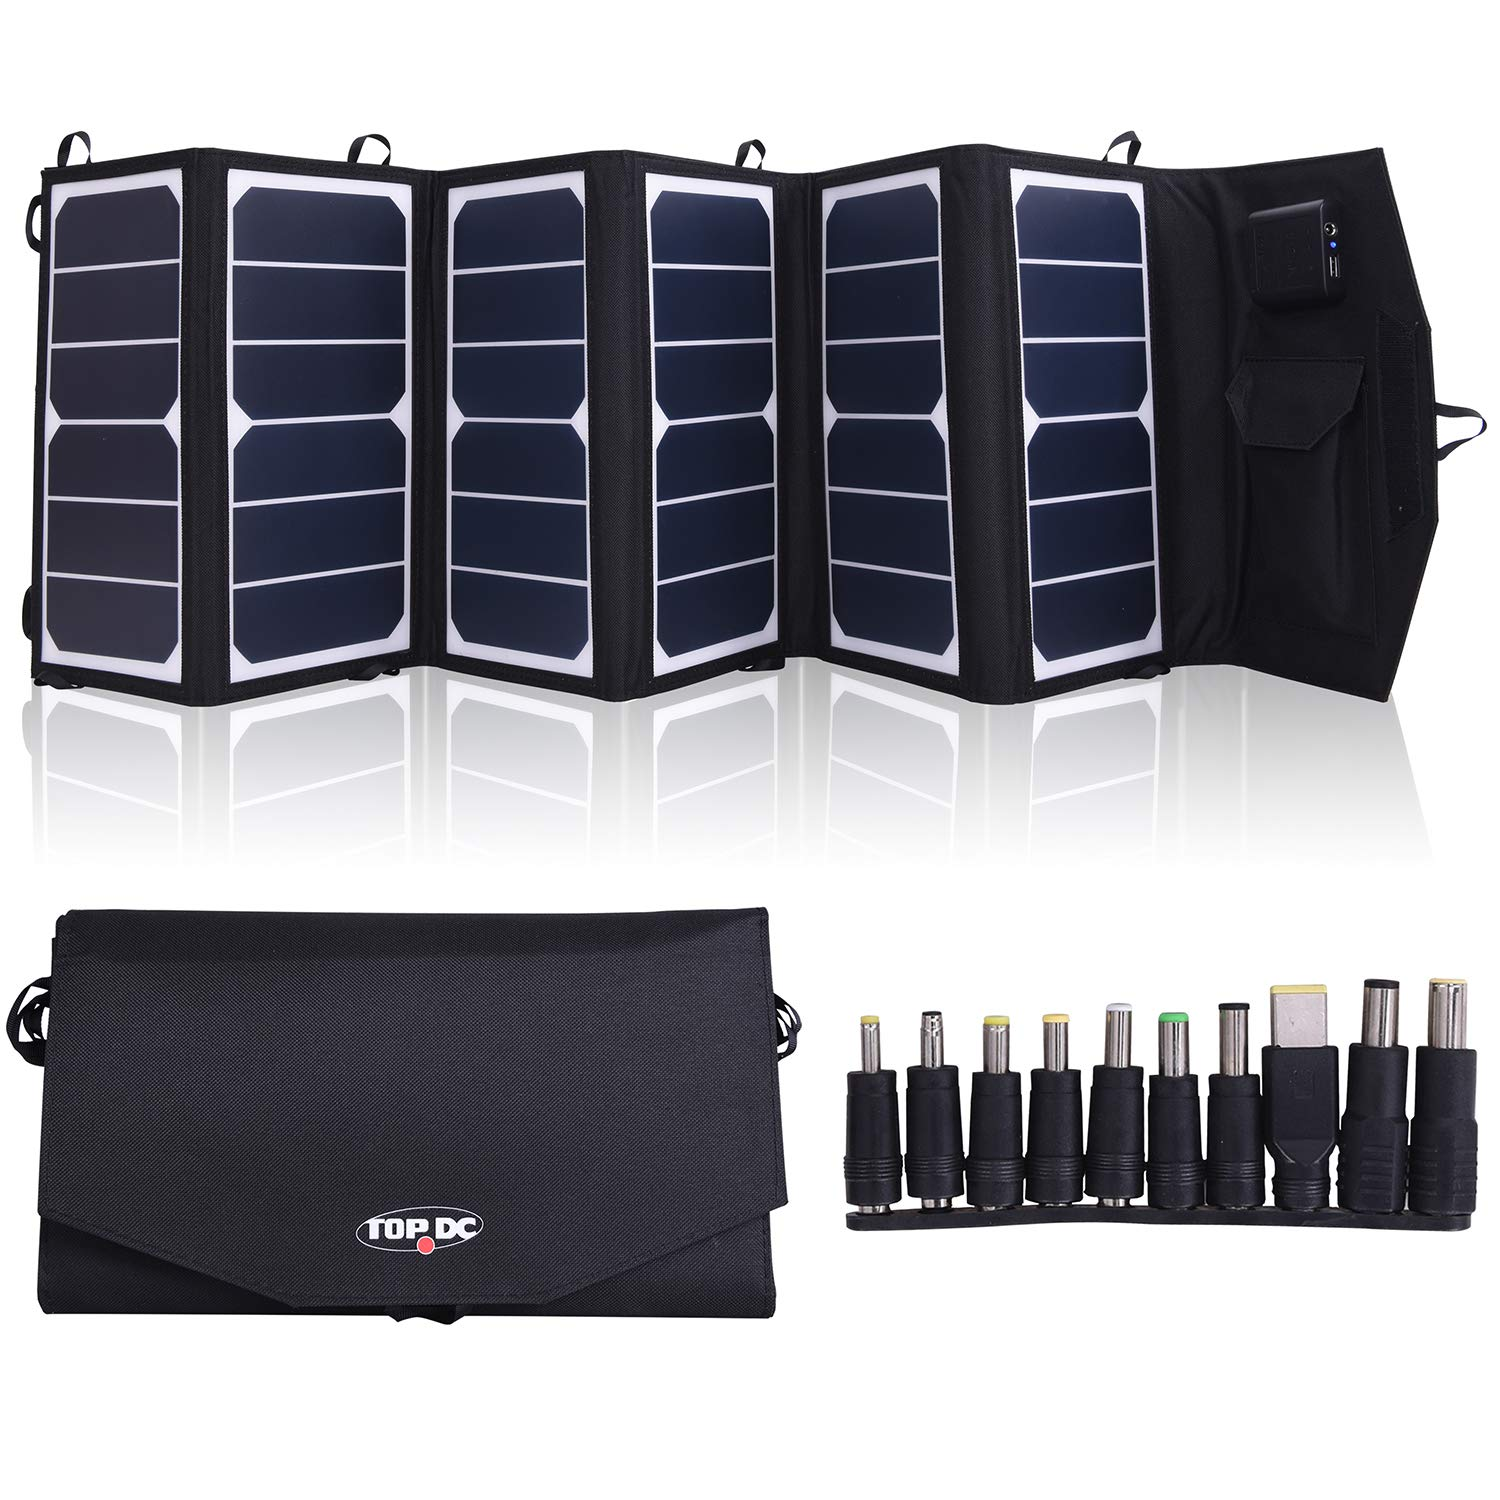 TOPDC 39W High Efficiency 22% Foldable Solar Panel Charger with 5V USB 18V DC Dual Output Camping Travel Charger for Laptop Tablet GPS iPhone iPad Android Camera Other 5-18V Device by TOPDC